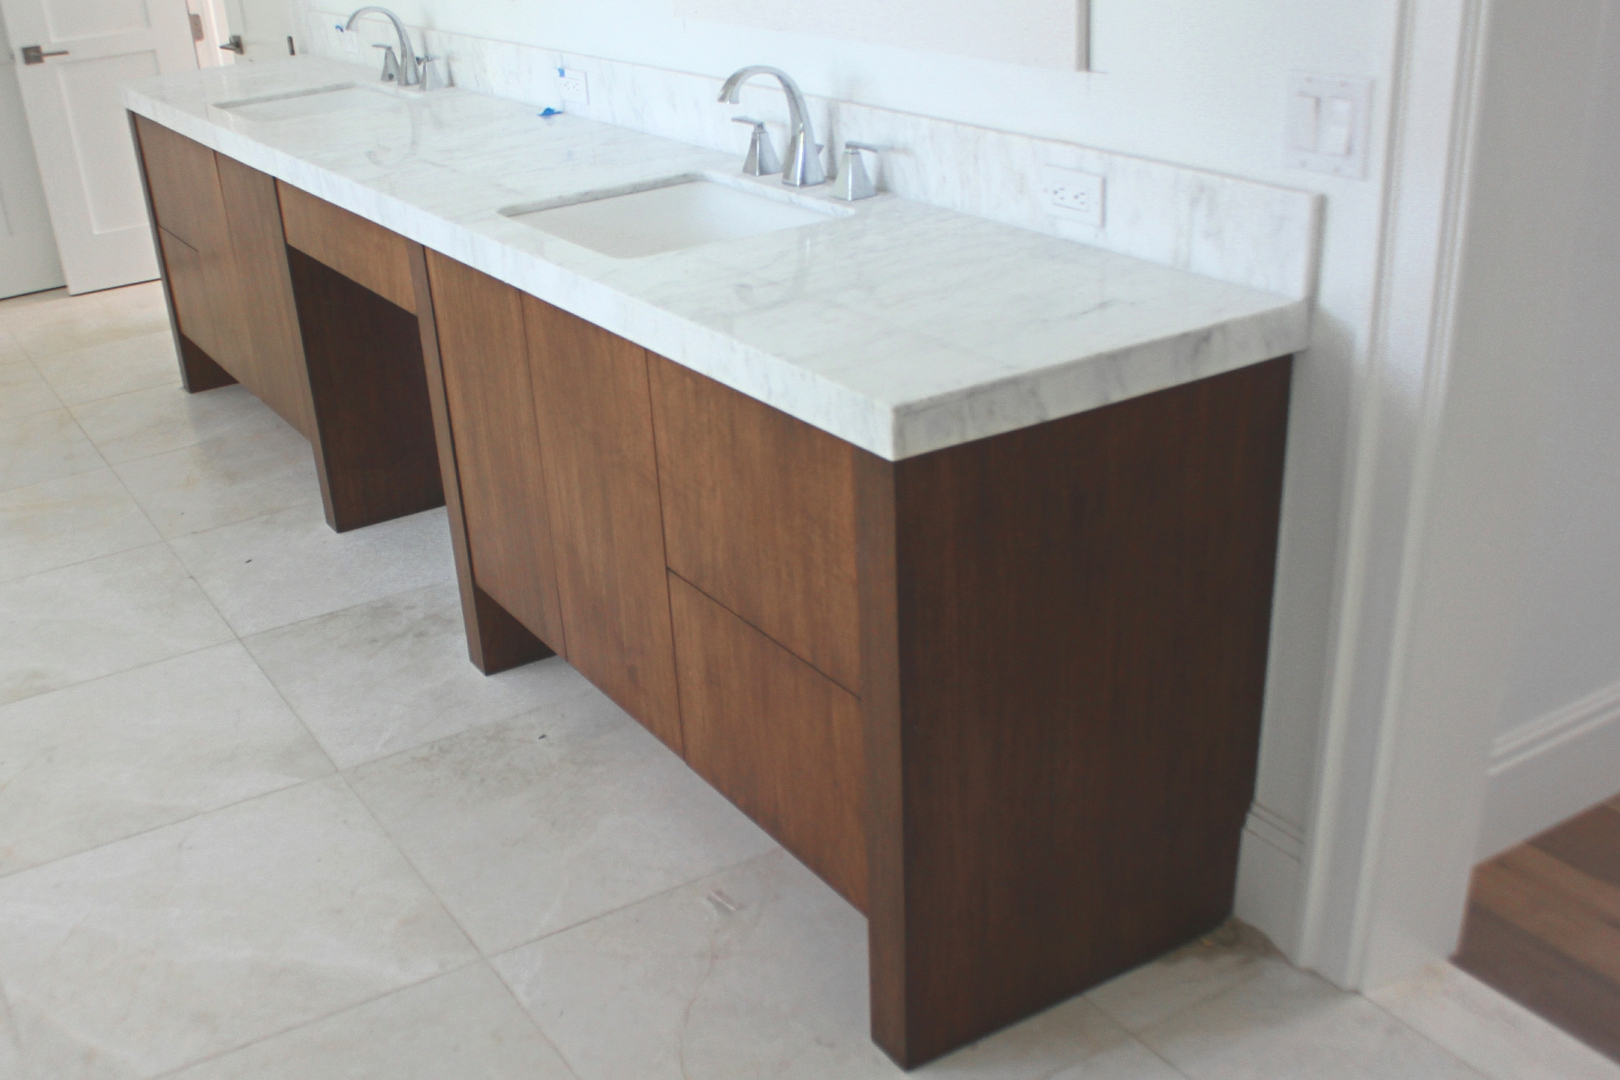 Quality custom cabinets furniture and woodwork - Fine Cabinetry Closet Systems Furniture Wood Finishing